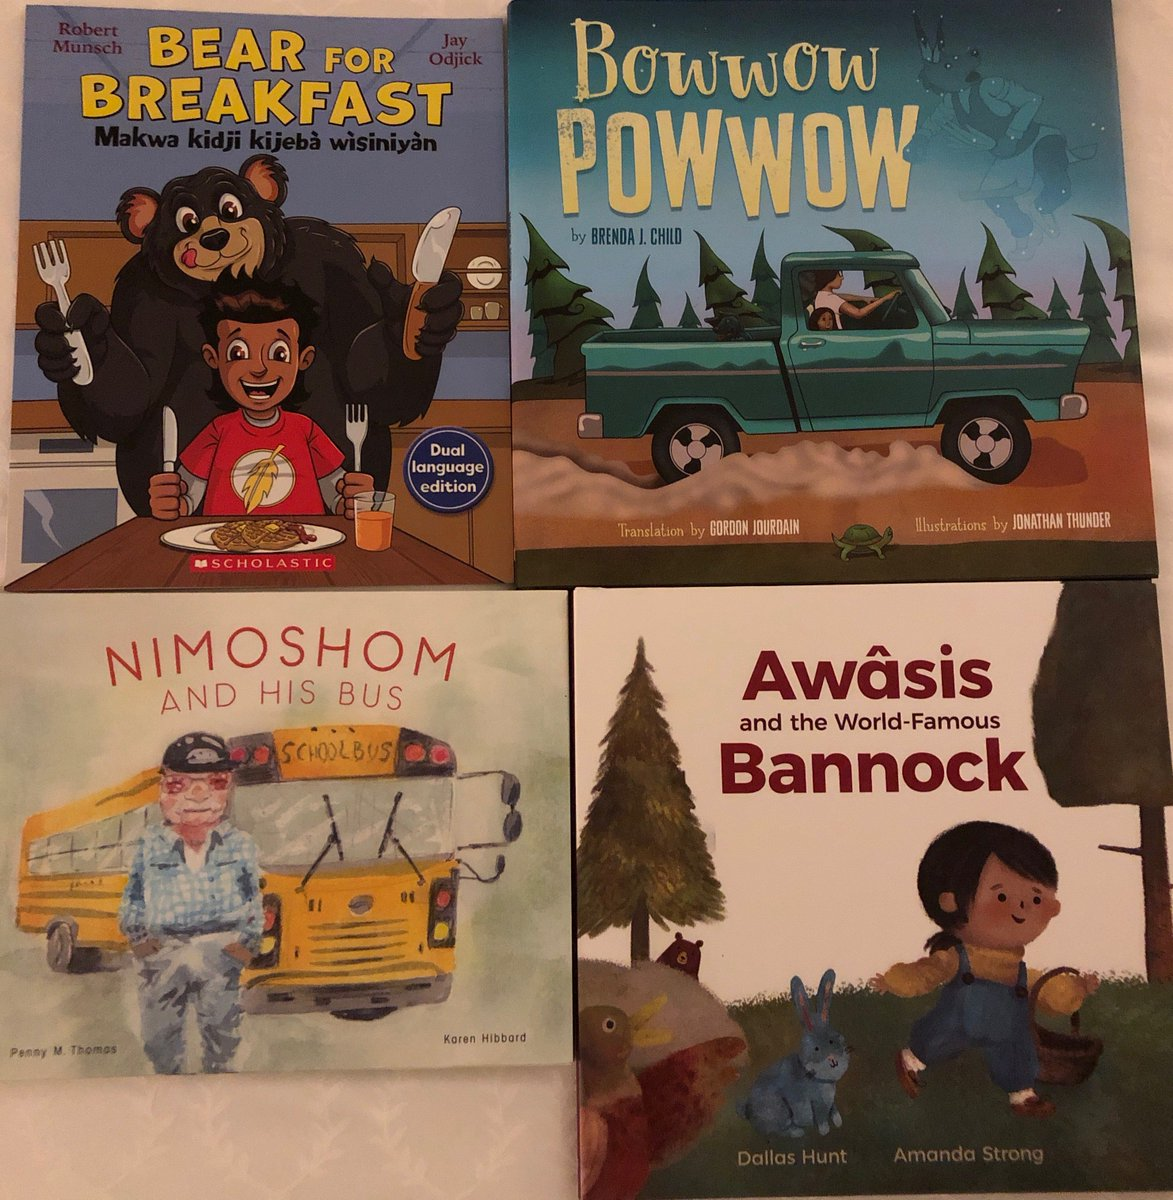 A2. Buy, use, share widely books by #Indigenous authors that include language. Every action, however small, makes a difference.  Some of my favs right now @Dallas_Hunt Brenda Childs, Penny Thomas and, my cuz @JayOdjick working with Robert Munsch #21Things #Indigenous #GreatReads